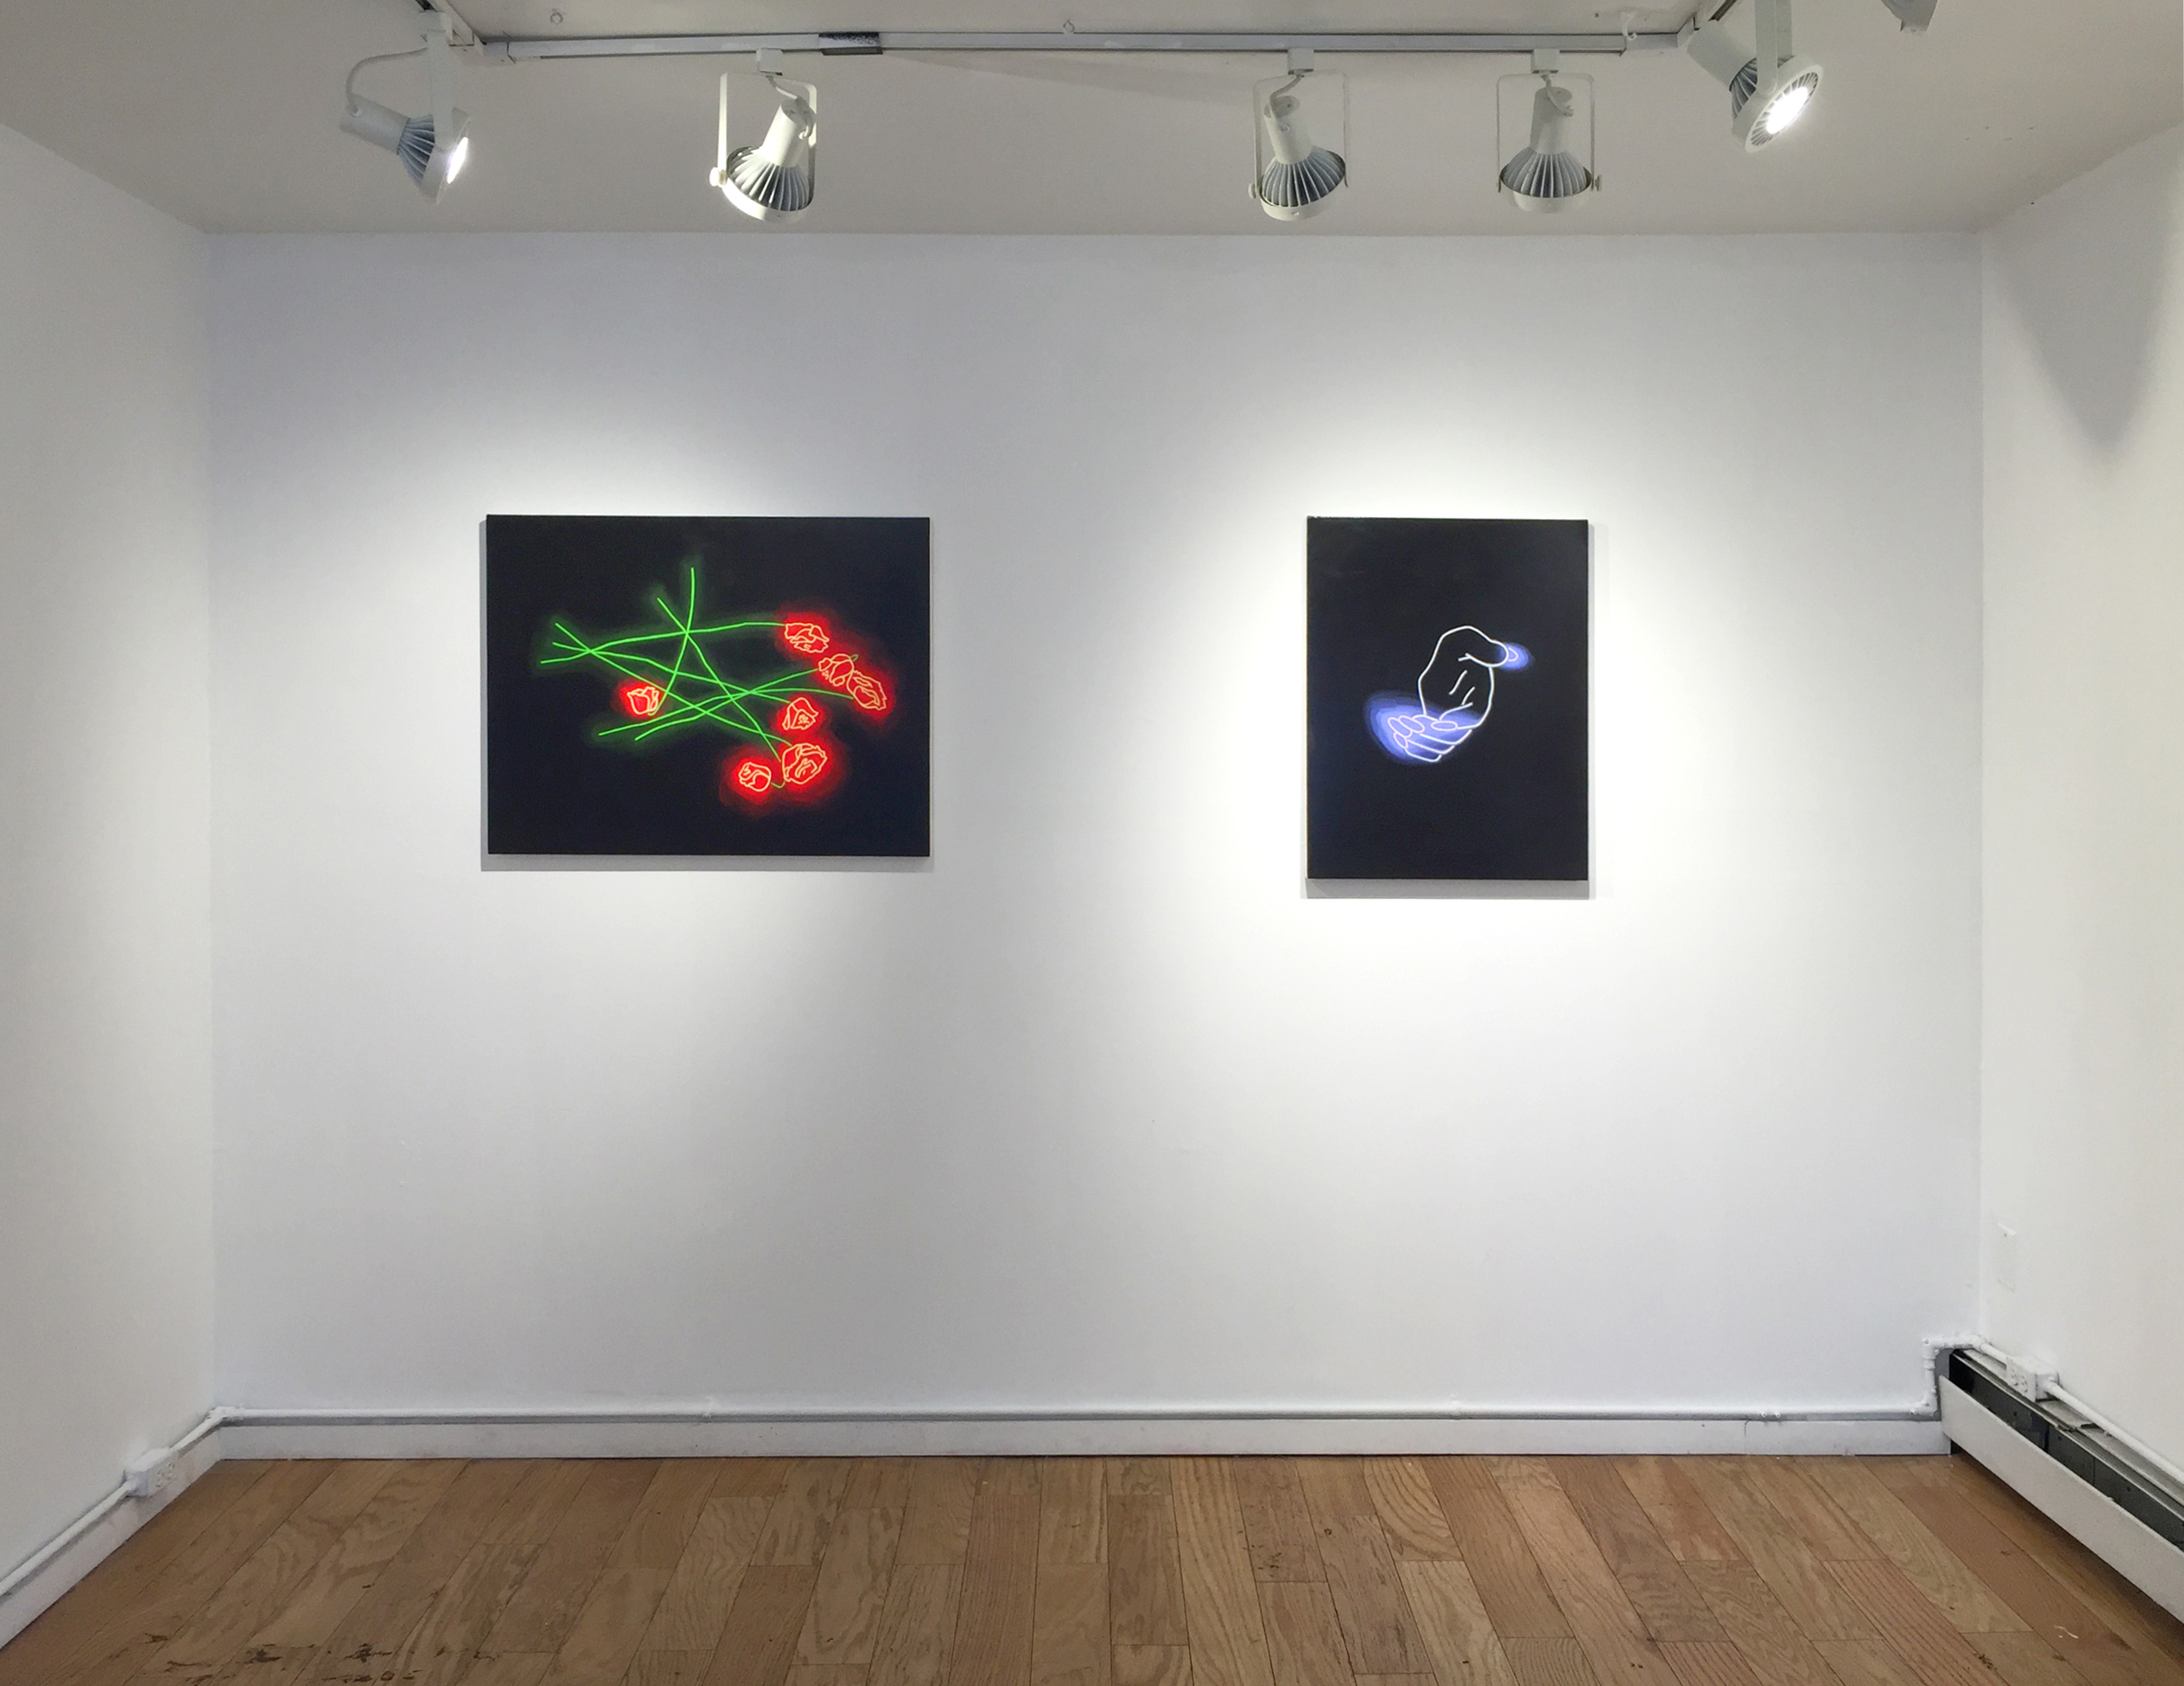 ABRACADABRA   Elijah Wheat Showroom, Brooklyn, NY April 22 – May 15, 2016  Left to right, Aliza Morell:  The Minor Fall , 2016;  Secret Chord , 2016.